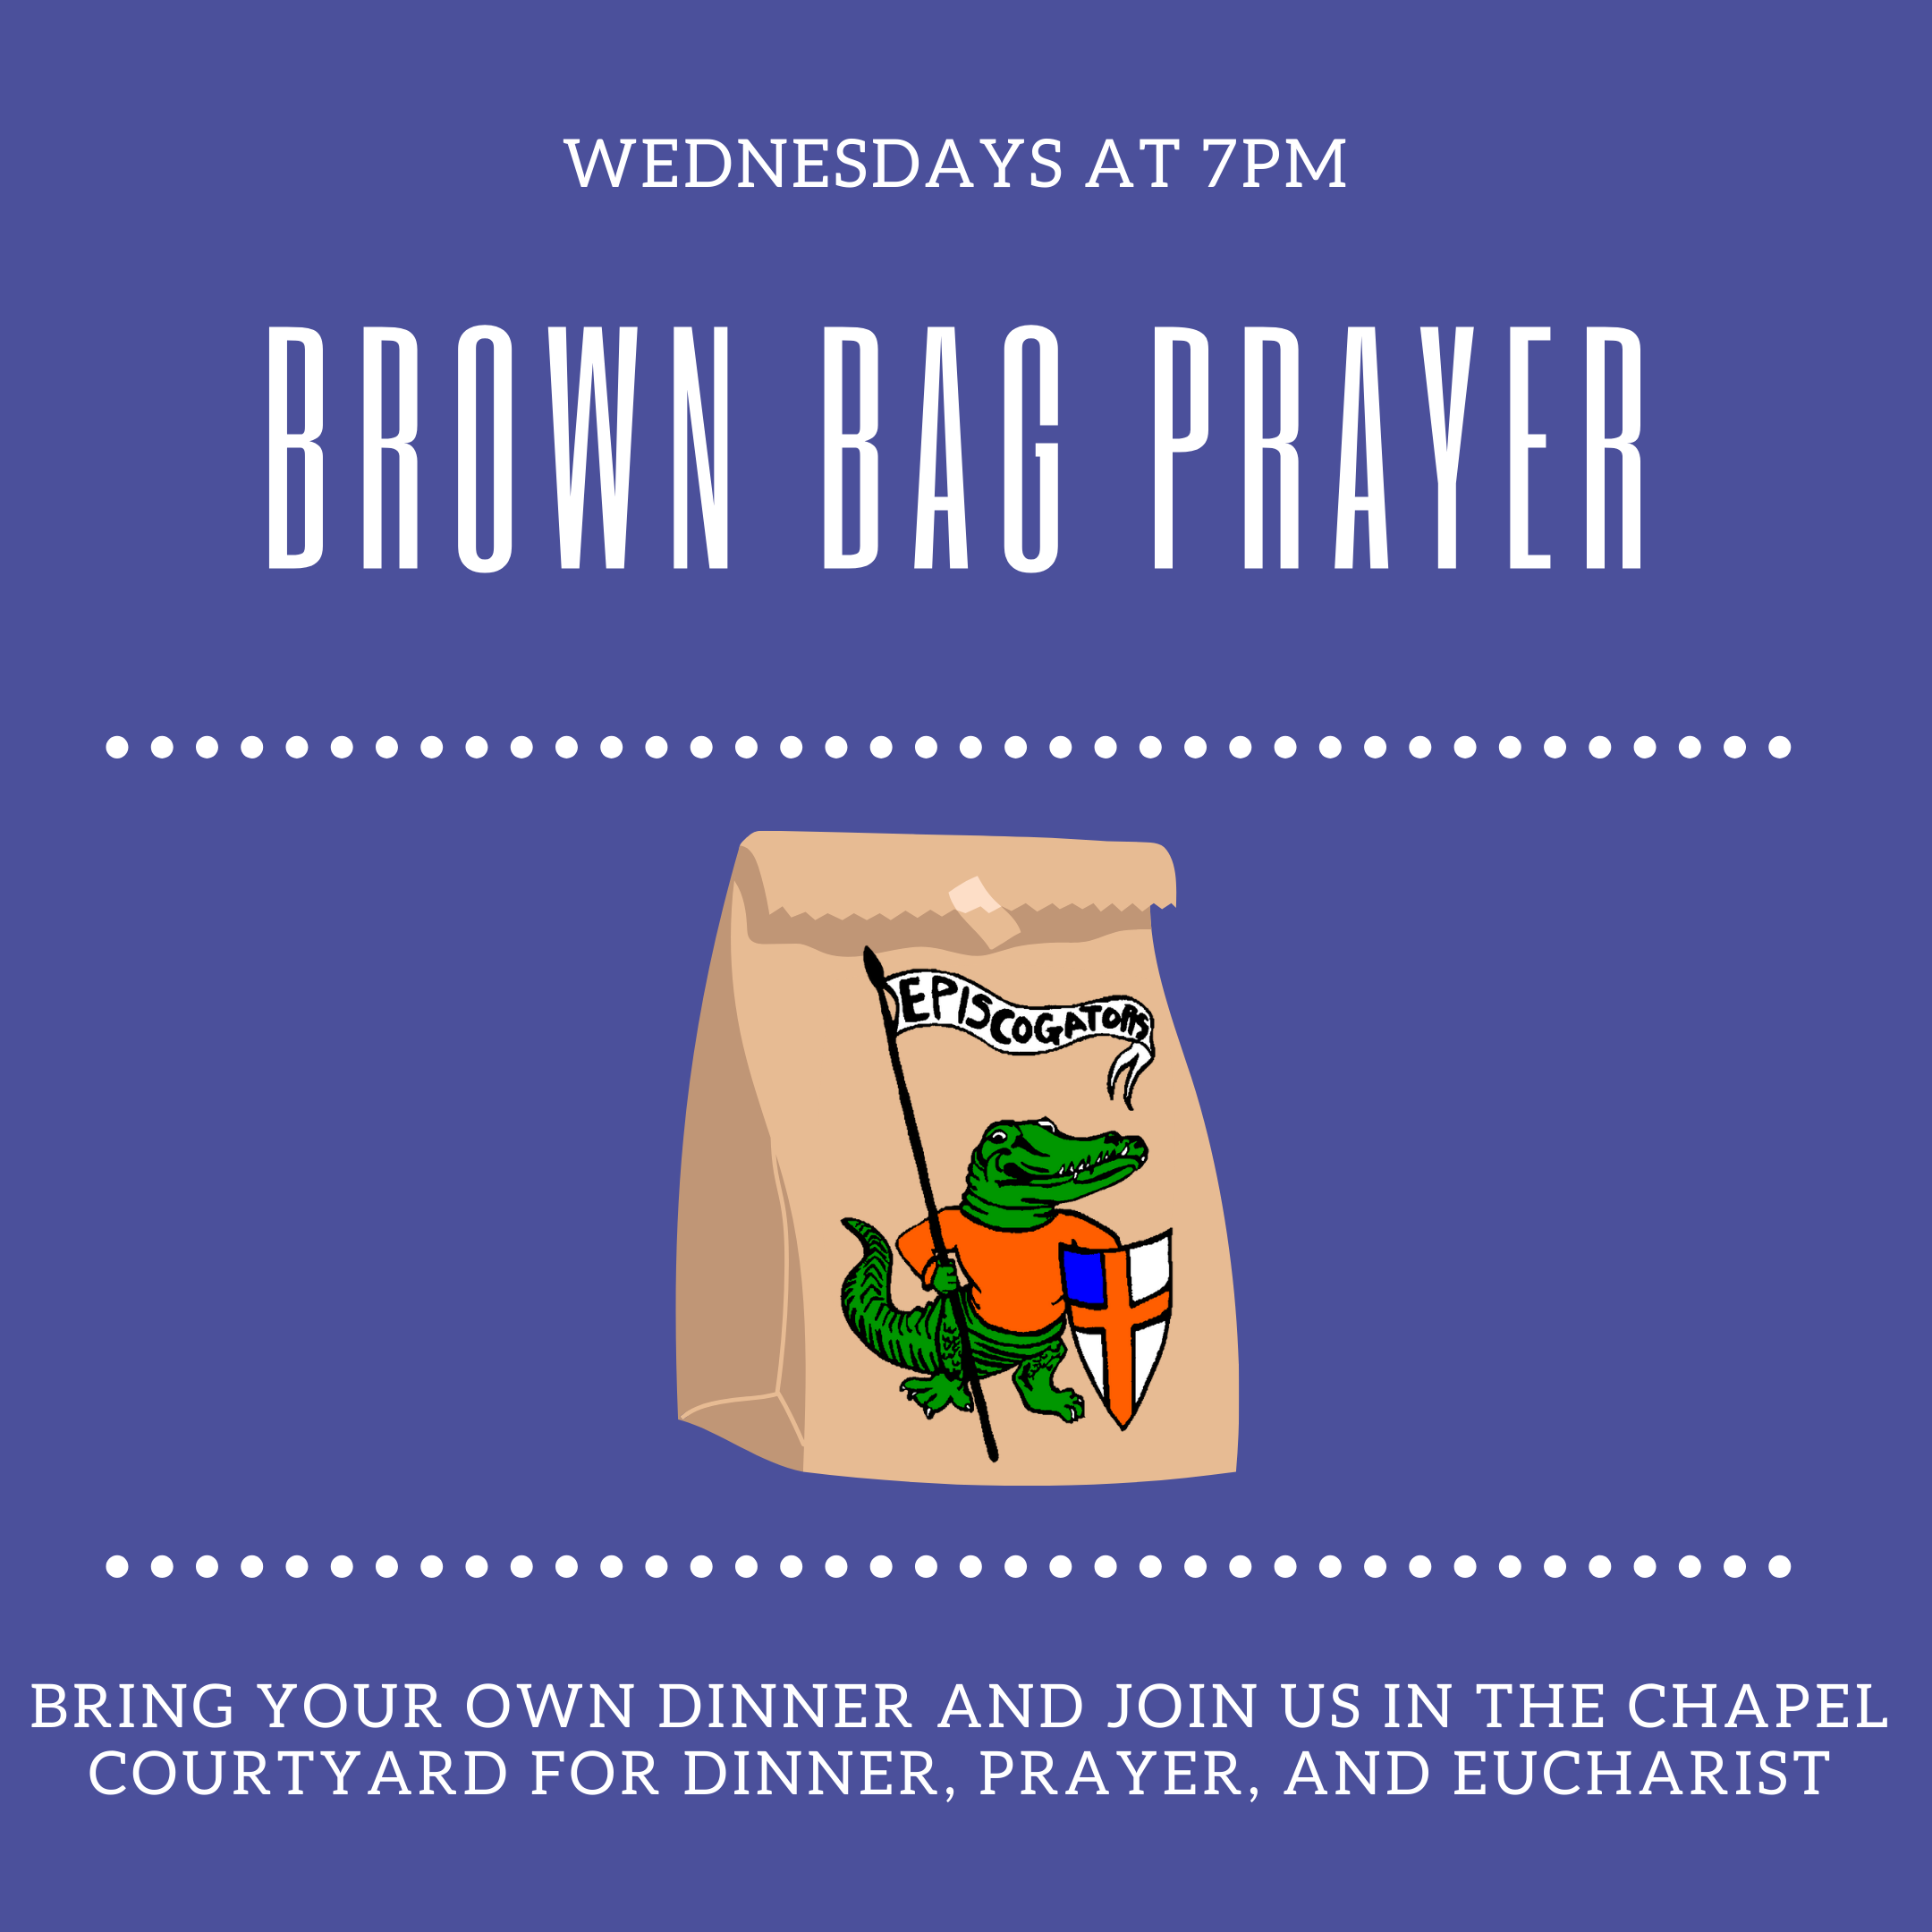 Brown bag dinner, prayer and eucharist